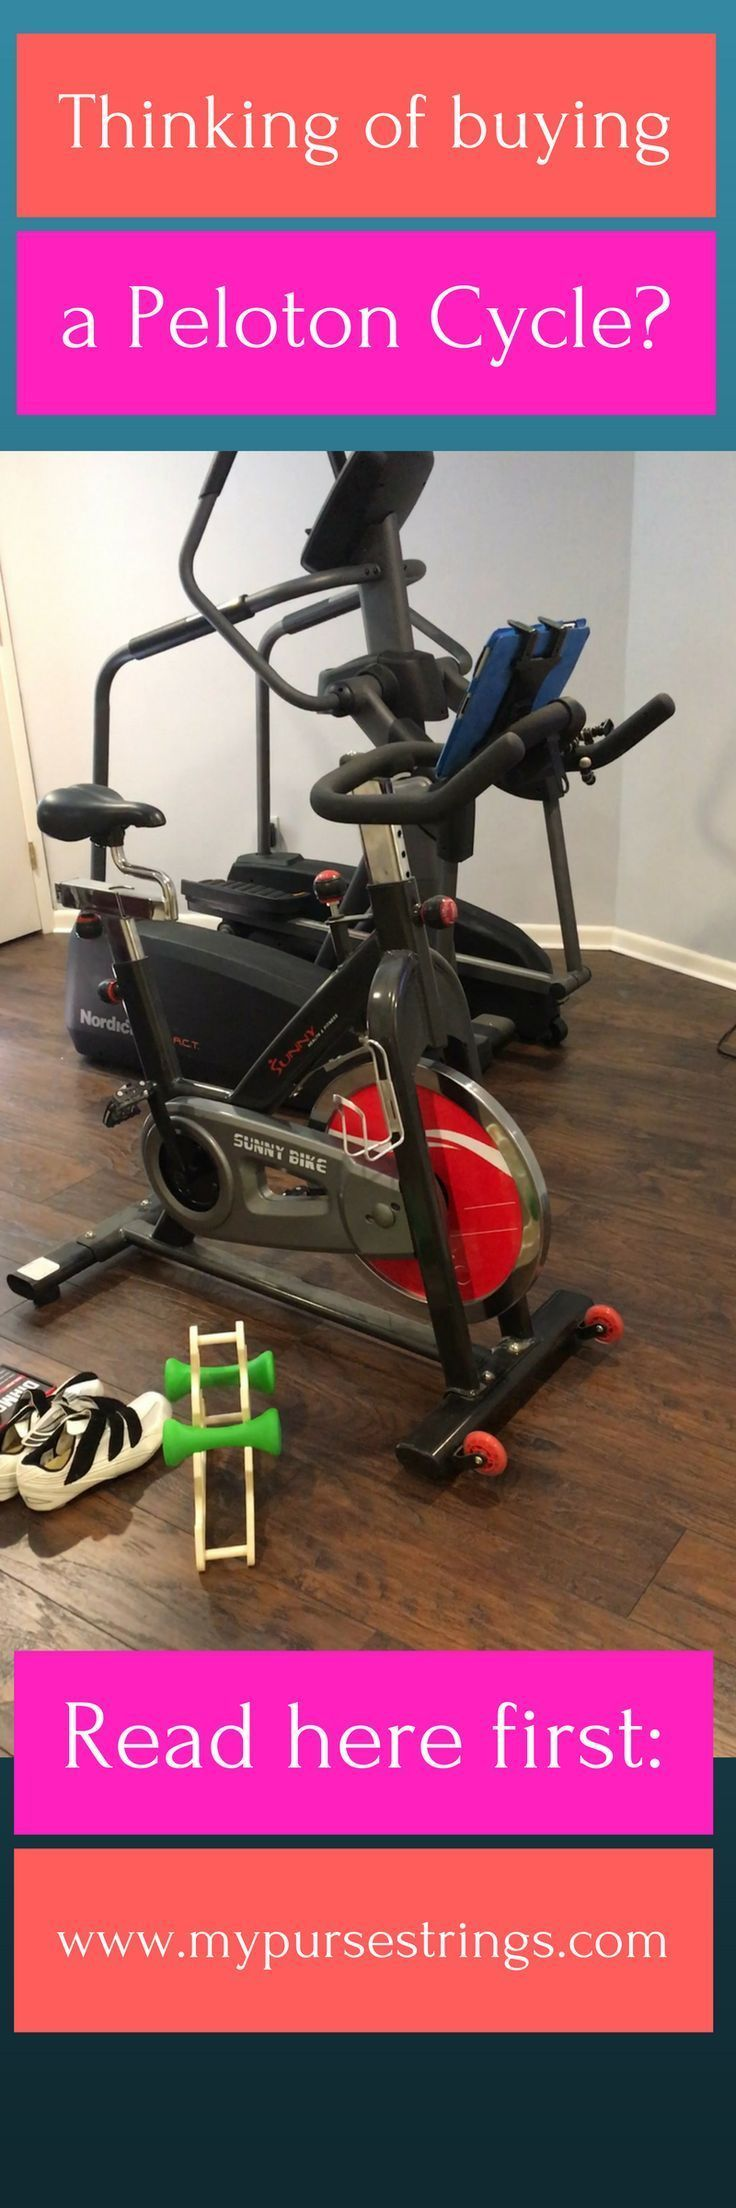 How To Get The Peloton Cycle Experience Without The Price Tag Peloton Cycle Peloton Cycling Workout